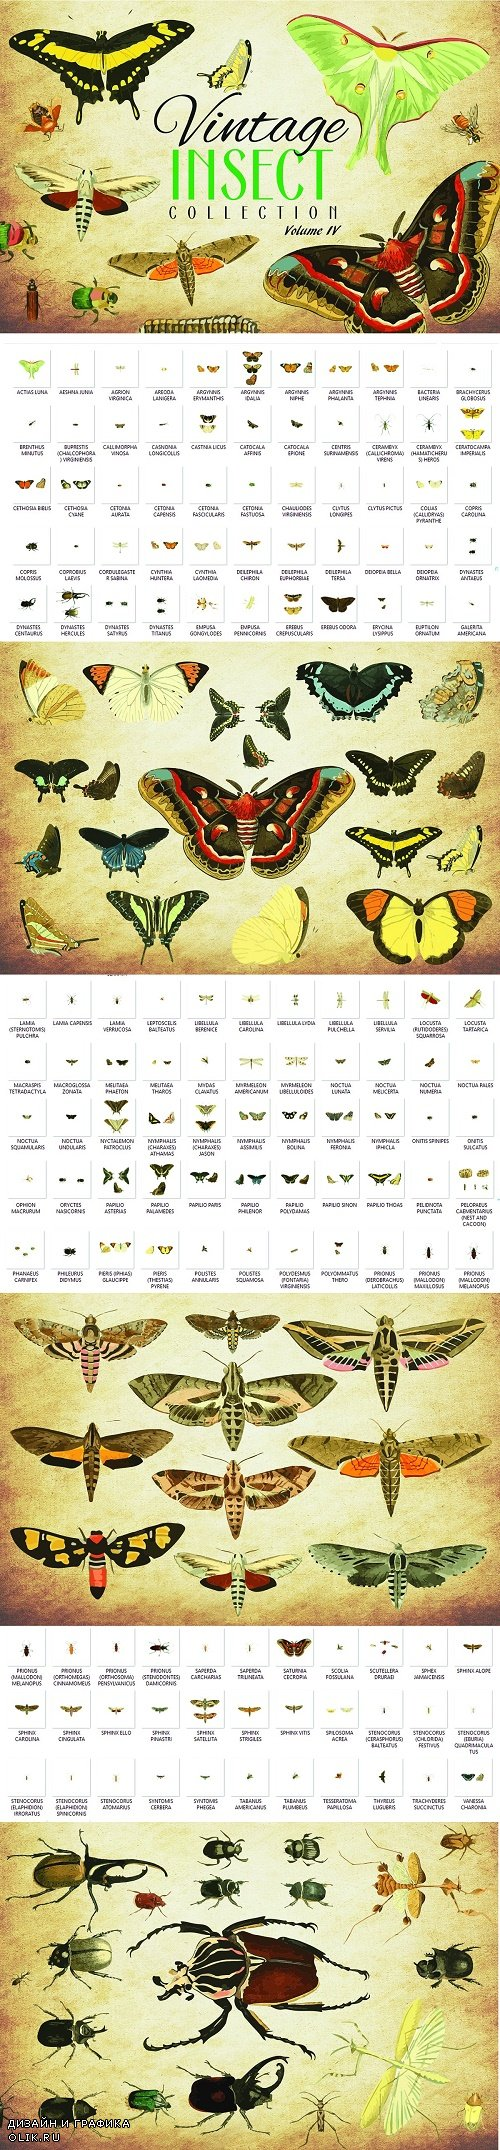 154 Vintage Insect Vector Graphics 4 - 3502662